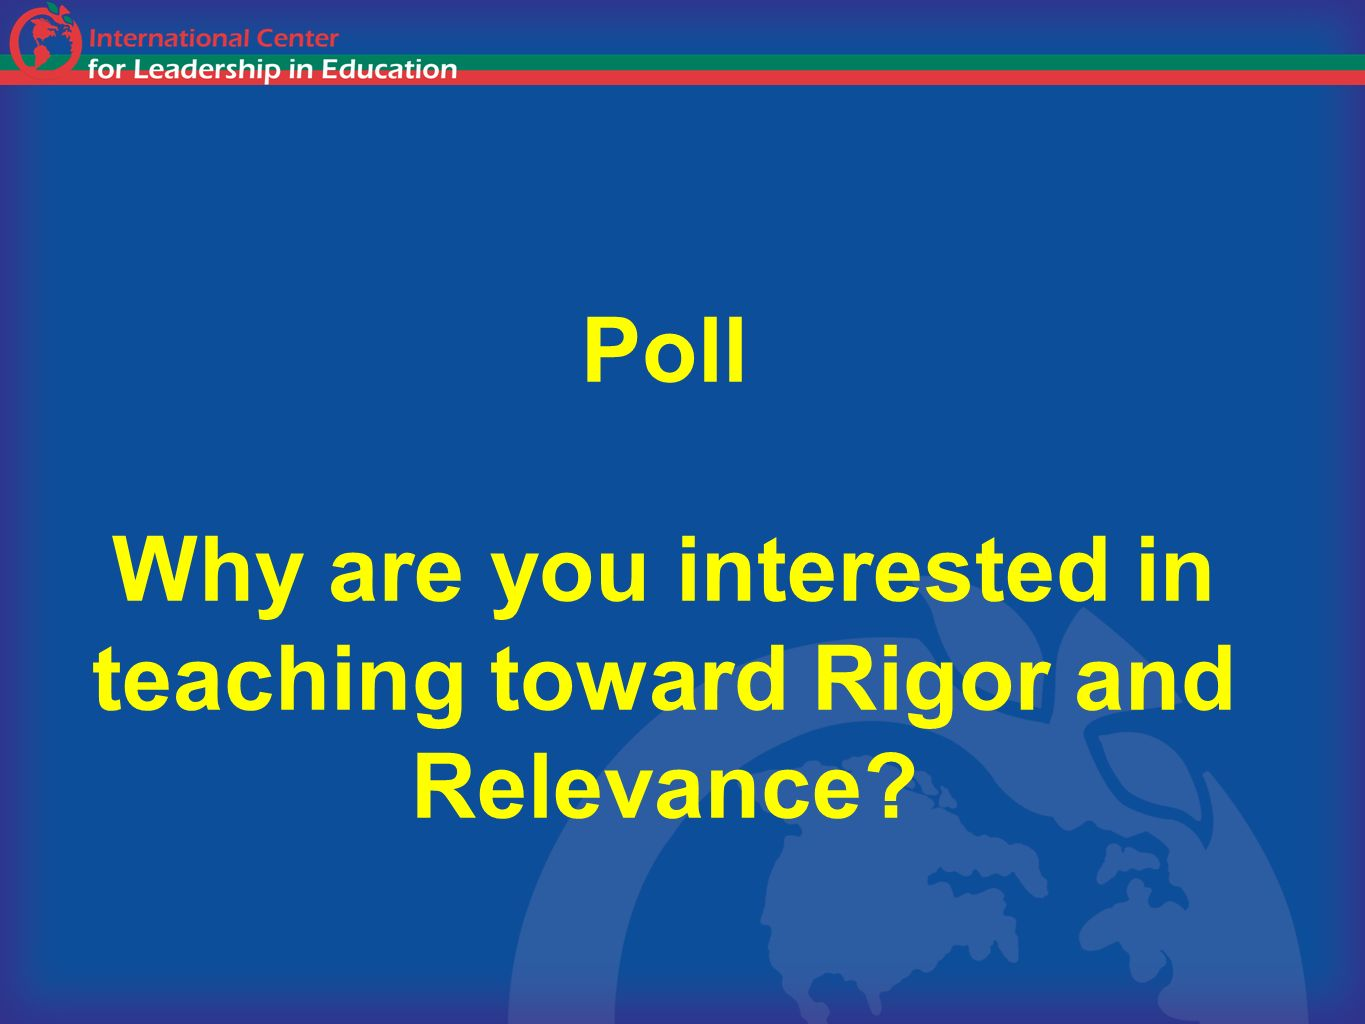 Poll Why are you interested in teaching toward Rigor and Relevance